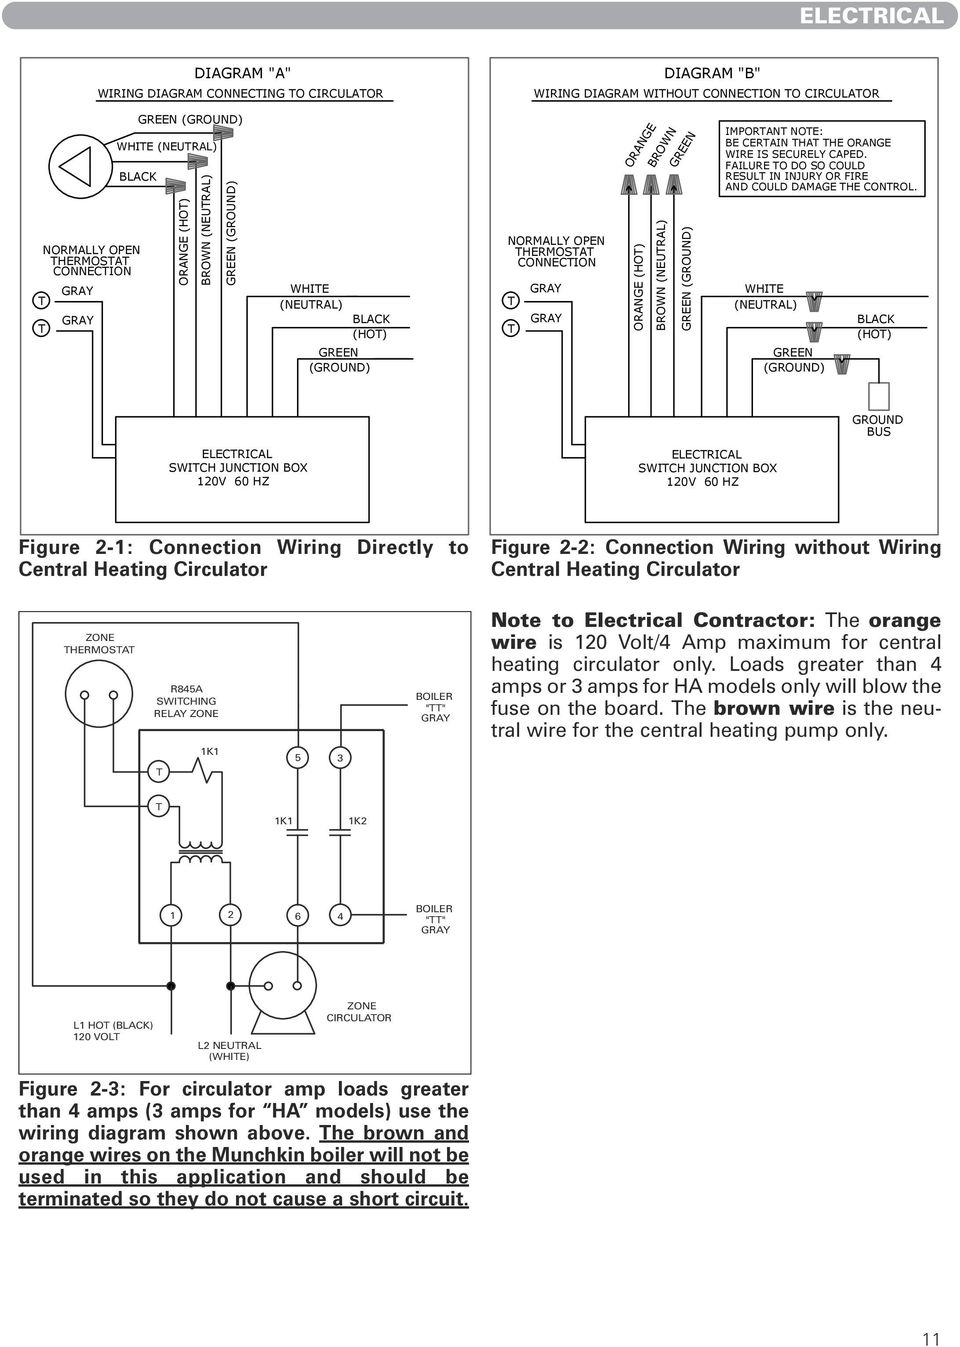 Munchkin Boiler Wiring Diagram Schematic Diagrams Wood Installing Operating Maintaining High Efficiency Heater Outdoor Furnace Installation